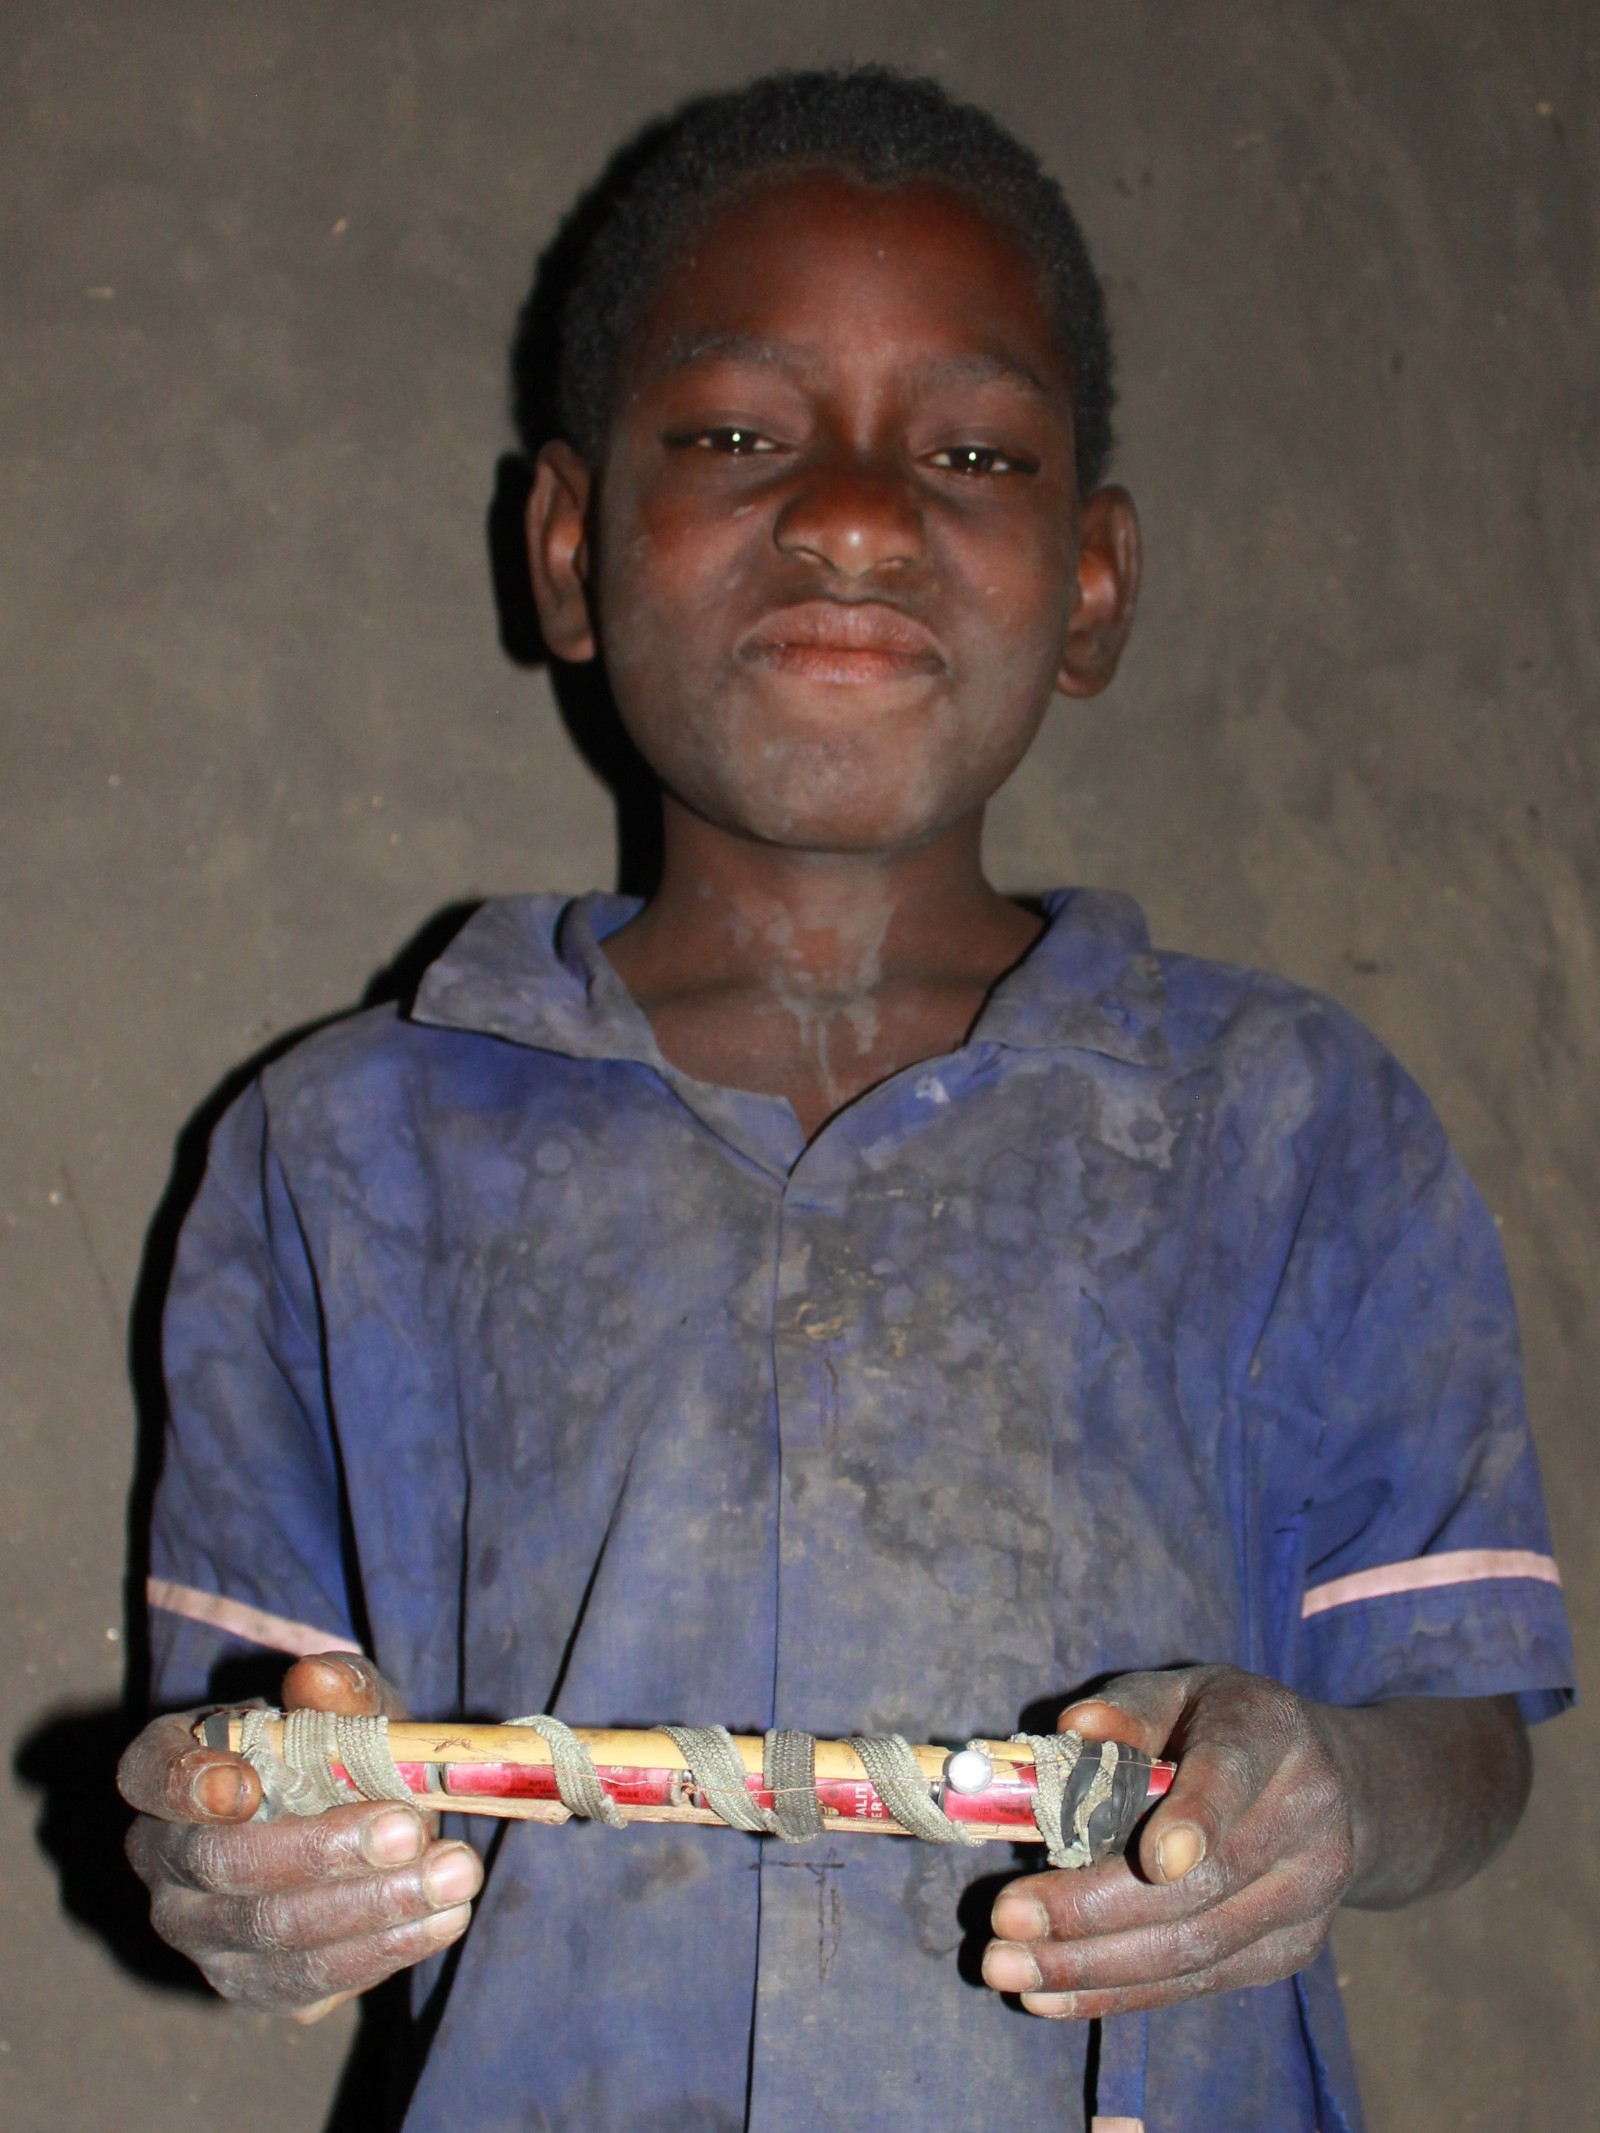 George is 9 years old. He has made a 'stick torch' which is used as the only source of lighting in his home in Malawi. It gives off less light than a candle. It's made of four batteries (three are dead ones he picked up off the ground in his village, which still have a voltage), an LED, a wire and some bark — all bound together with a shoe lace and strips of bicycle rubber. Credit: SolarAid